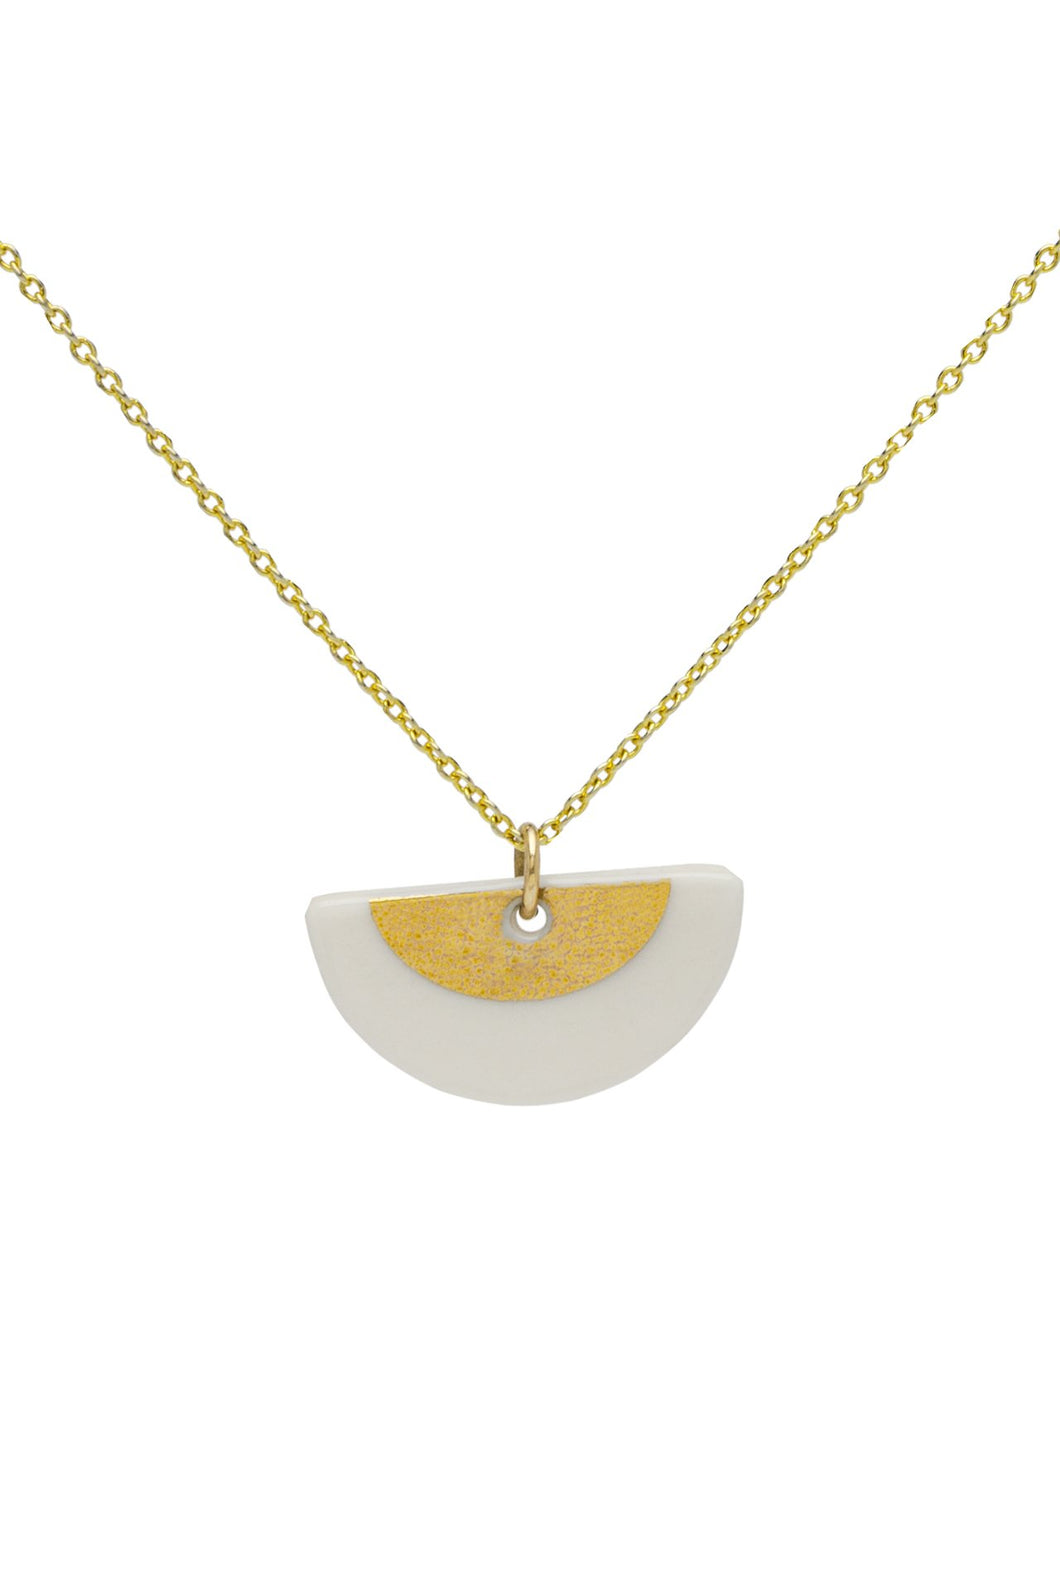 Porcelain gold ora necklace gold vermeil chain